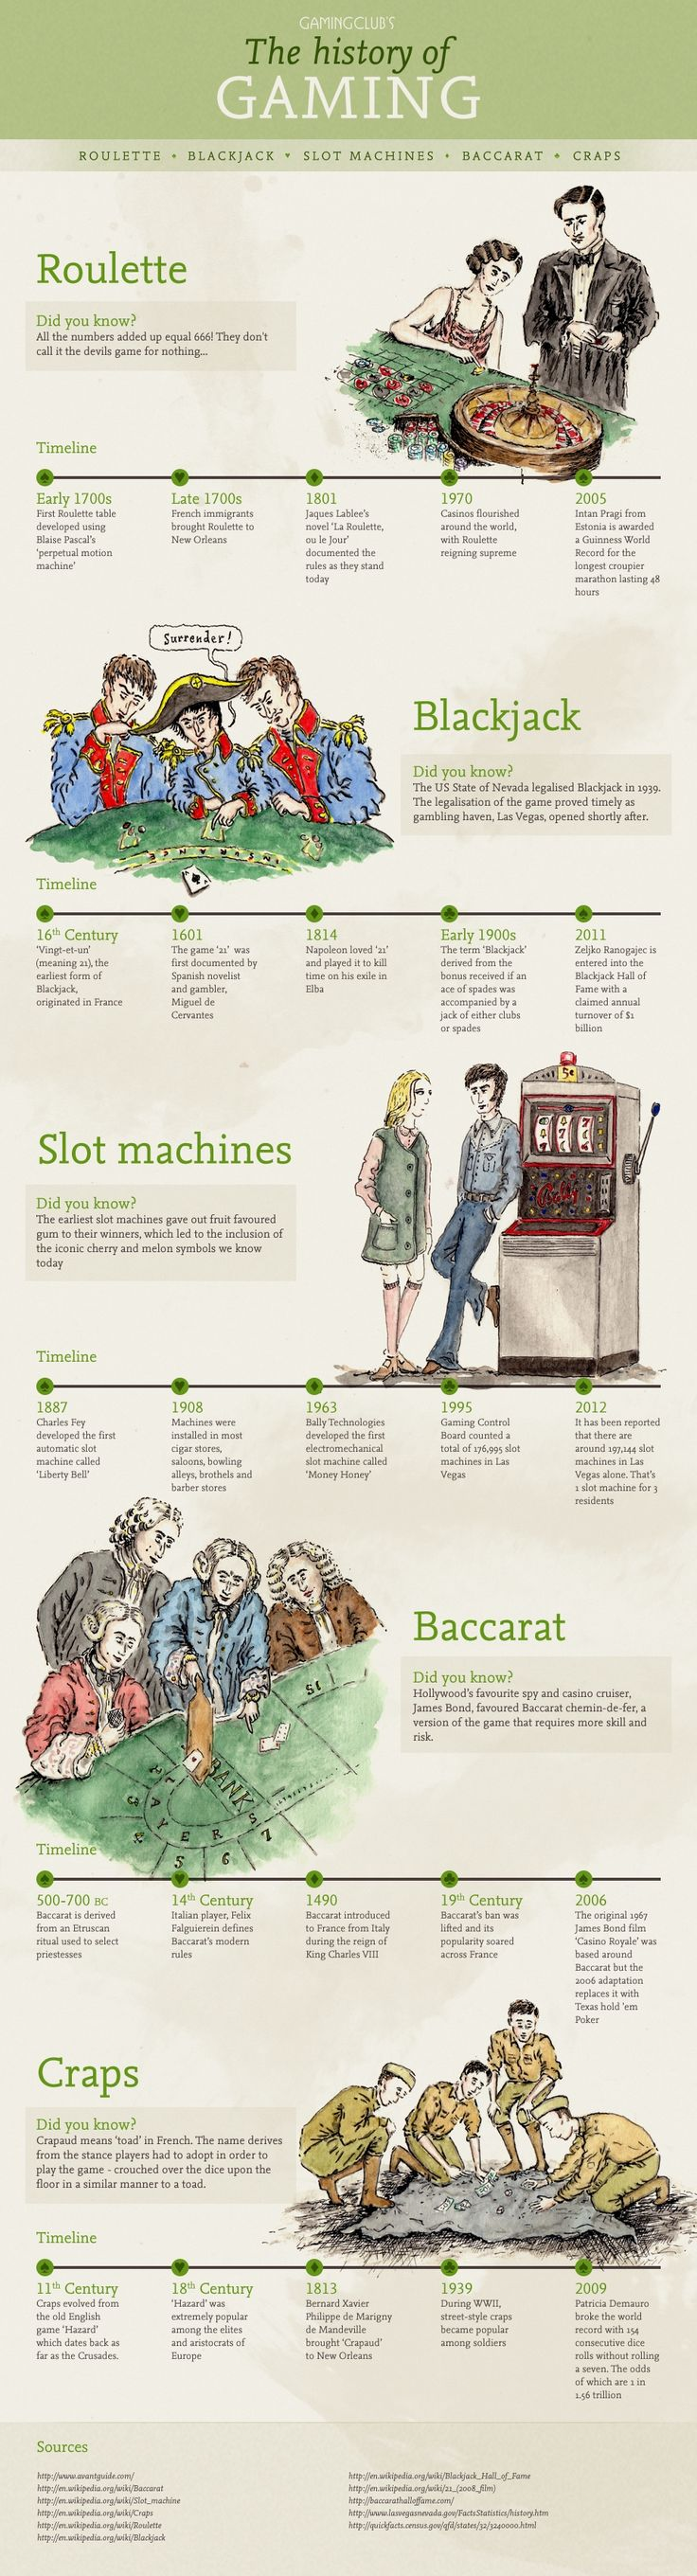 Historical Timeline of Popular Casino Games Filed in Gaming - The folks at Gaming Club put together this infographic timeline of some of the most popular casino games. The infographic takes a look at some of the historical milestones for such games as roulette, blackjack, slot machines, baccarat and craps.